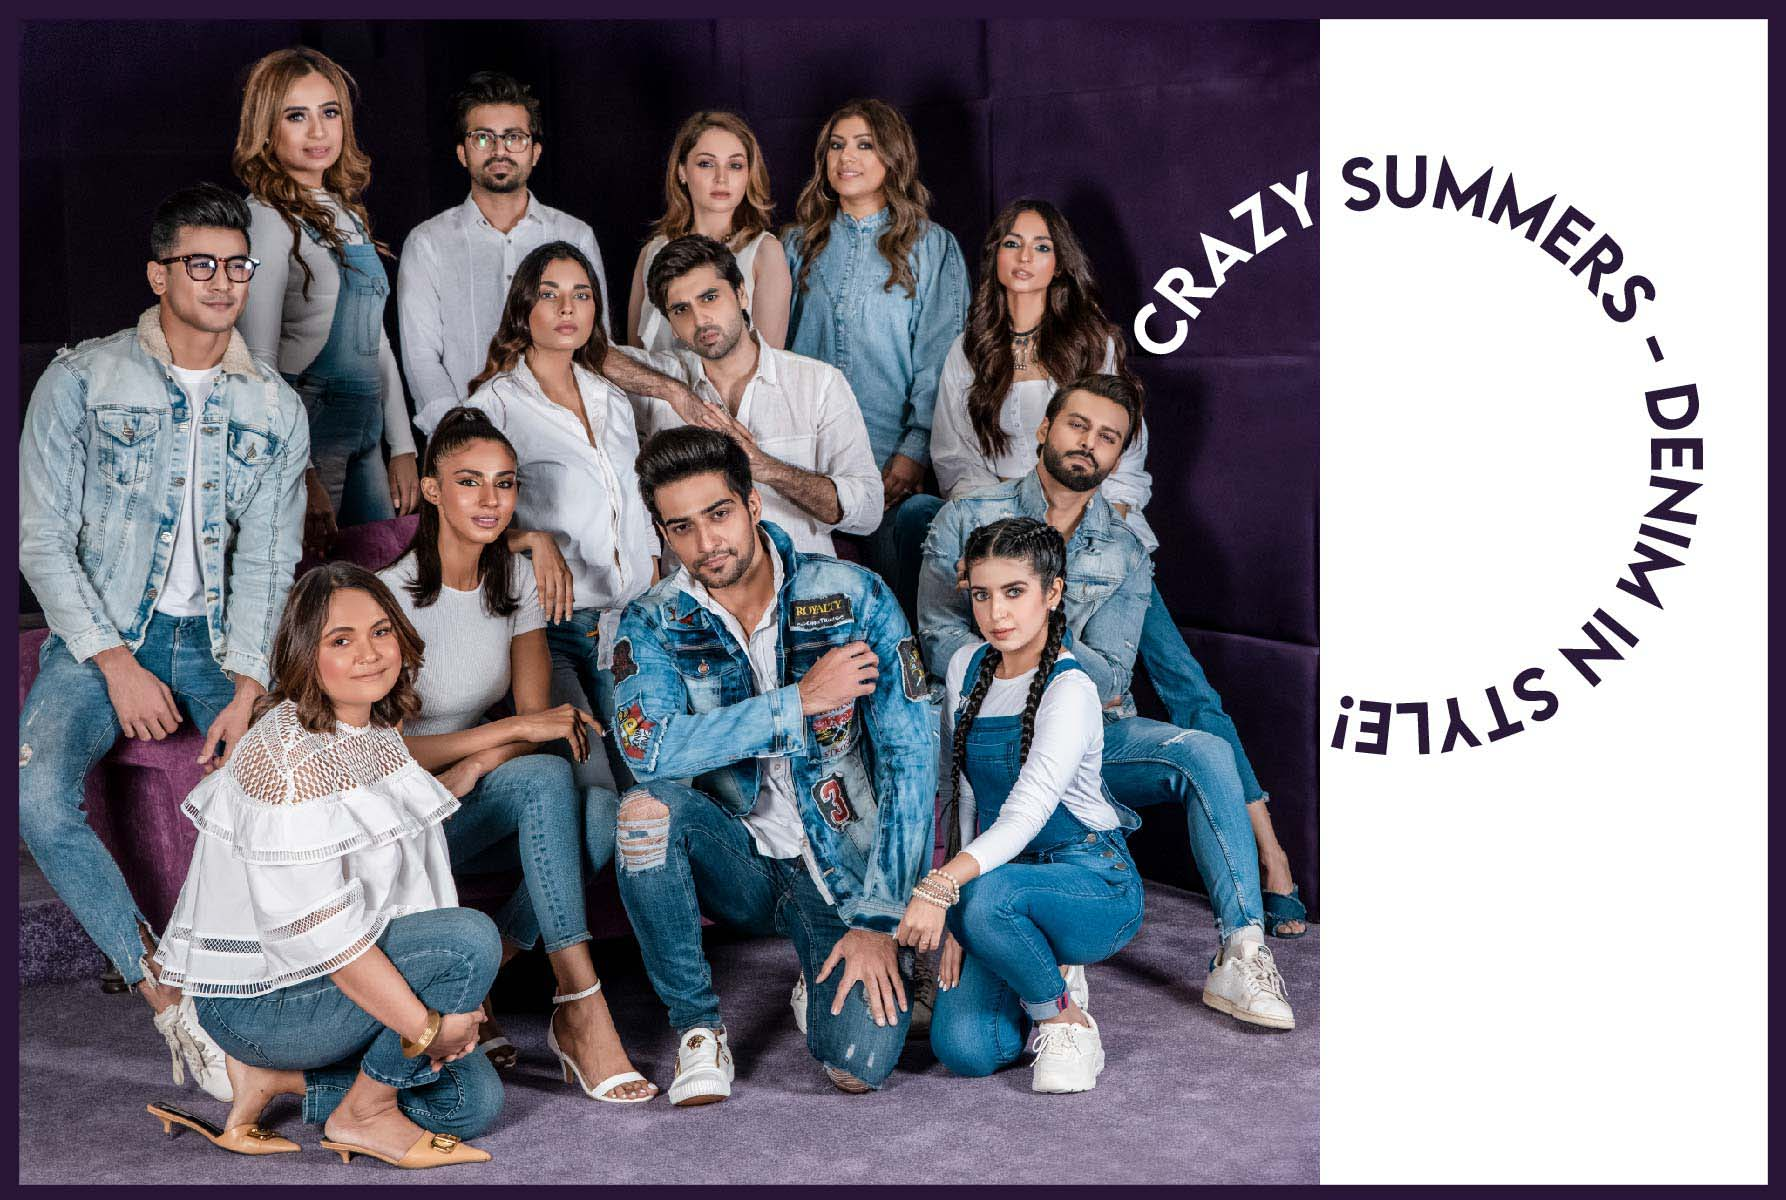 Crazy Summers Denim in Style